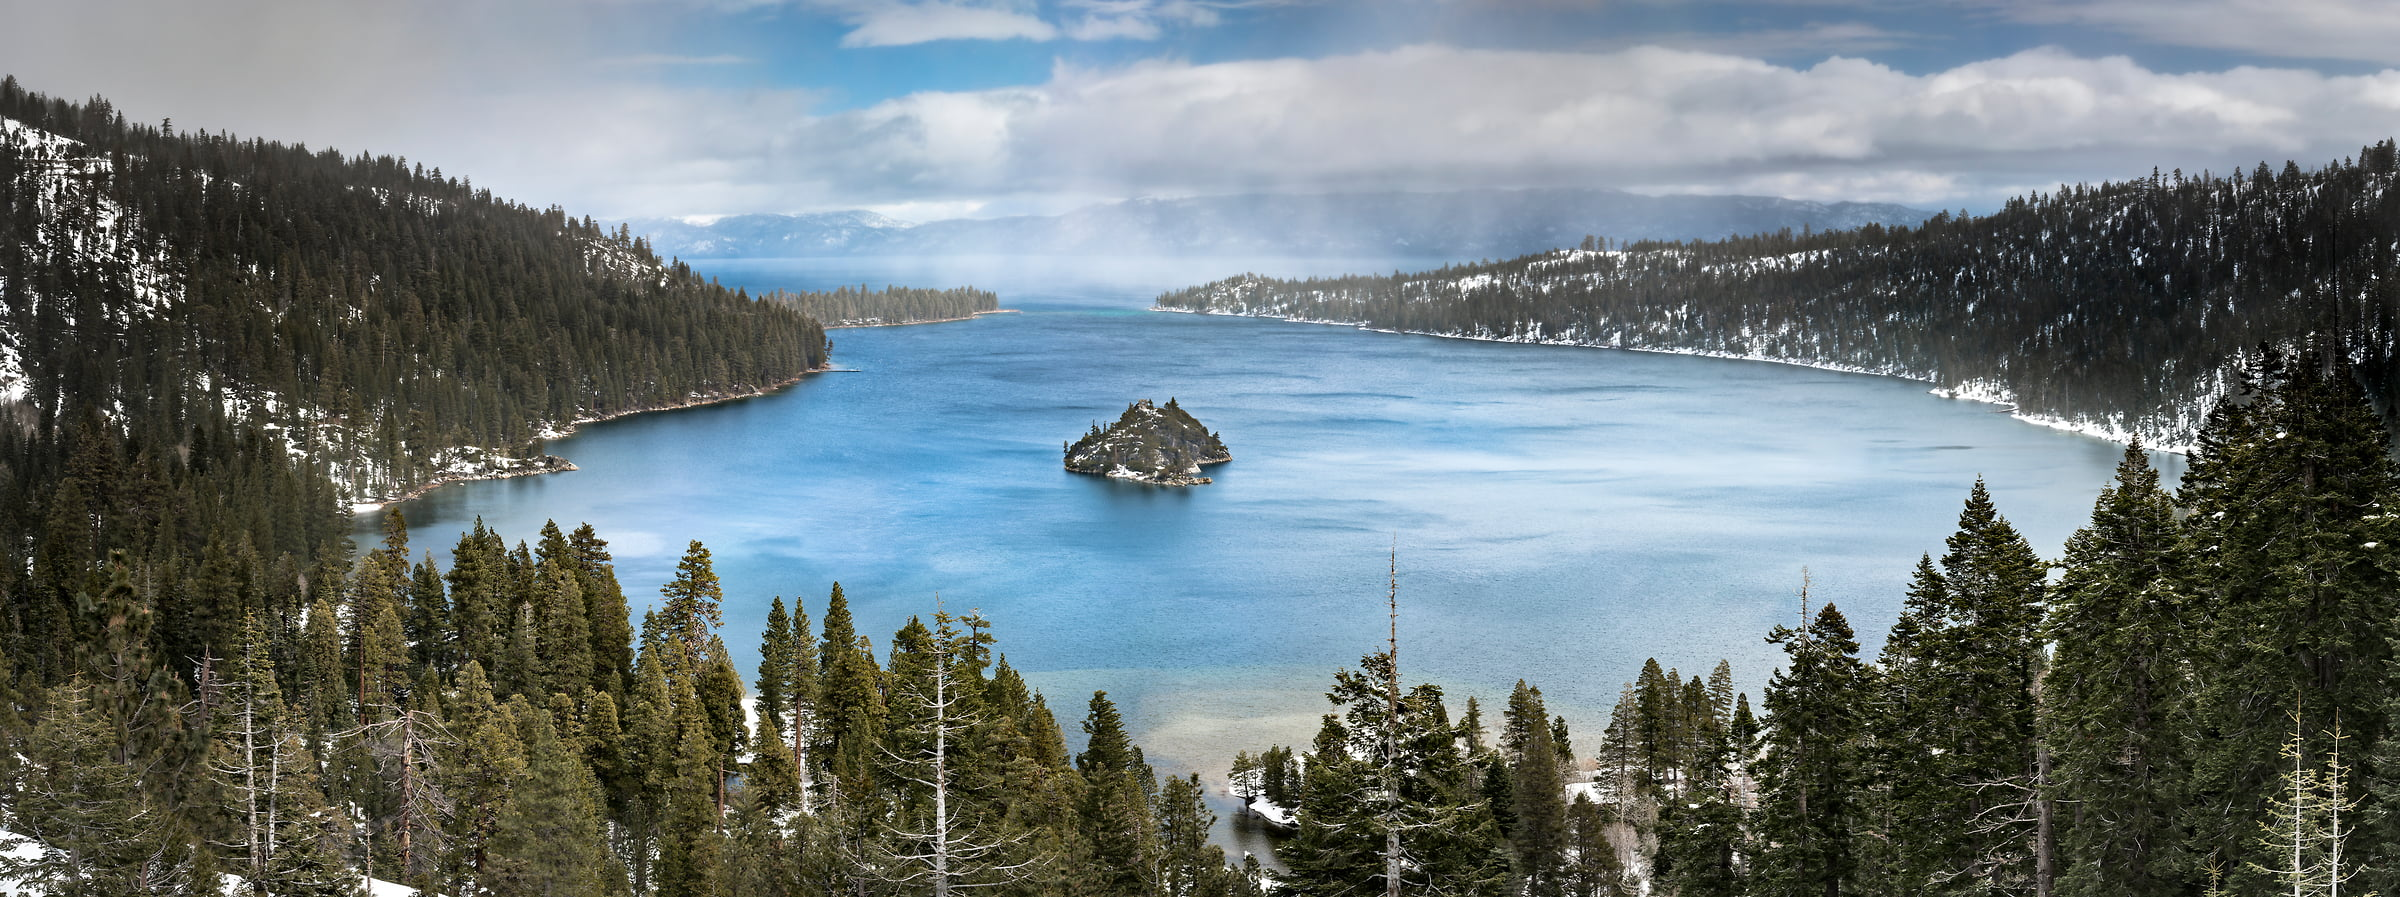 A very high resolution, large-format VAST photo of Emerald Bay in Lake Tahoe in winter with snow; fine art landscape photograph created by Justin Katz in California